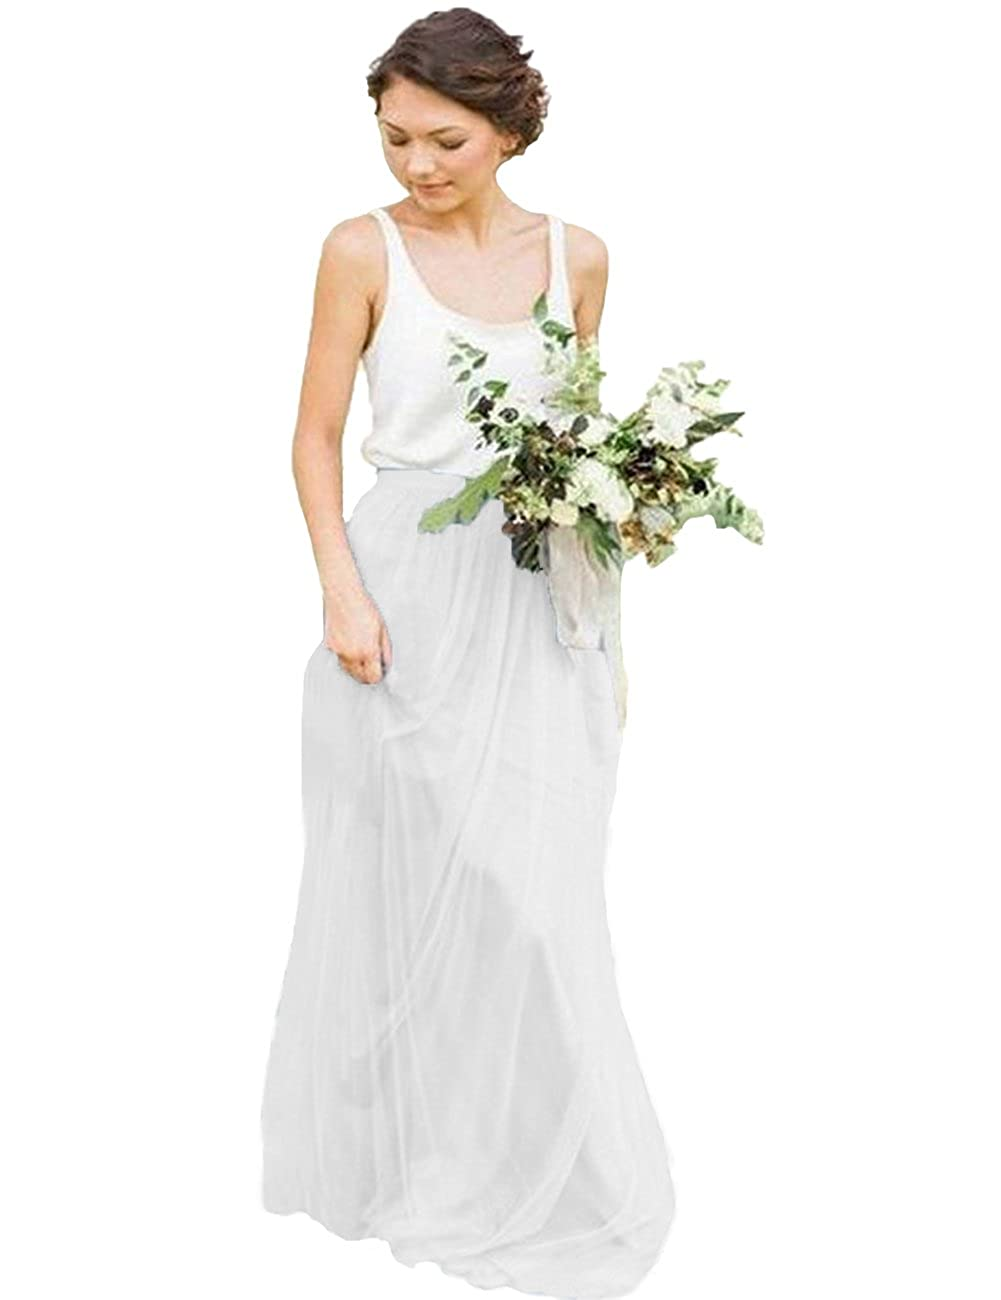 53aefdffa7ee Dressyu Scoop Neck Boho Garden Wedding Dresses Rustic Country Bridal Gowns  at Amazon Women s Clothing store